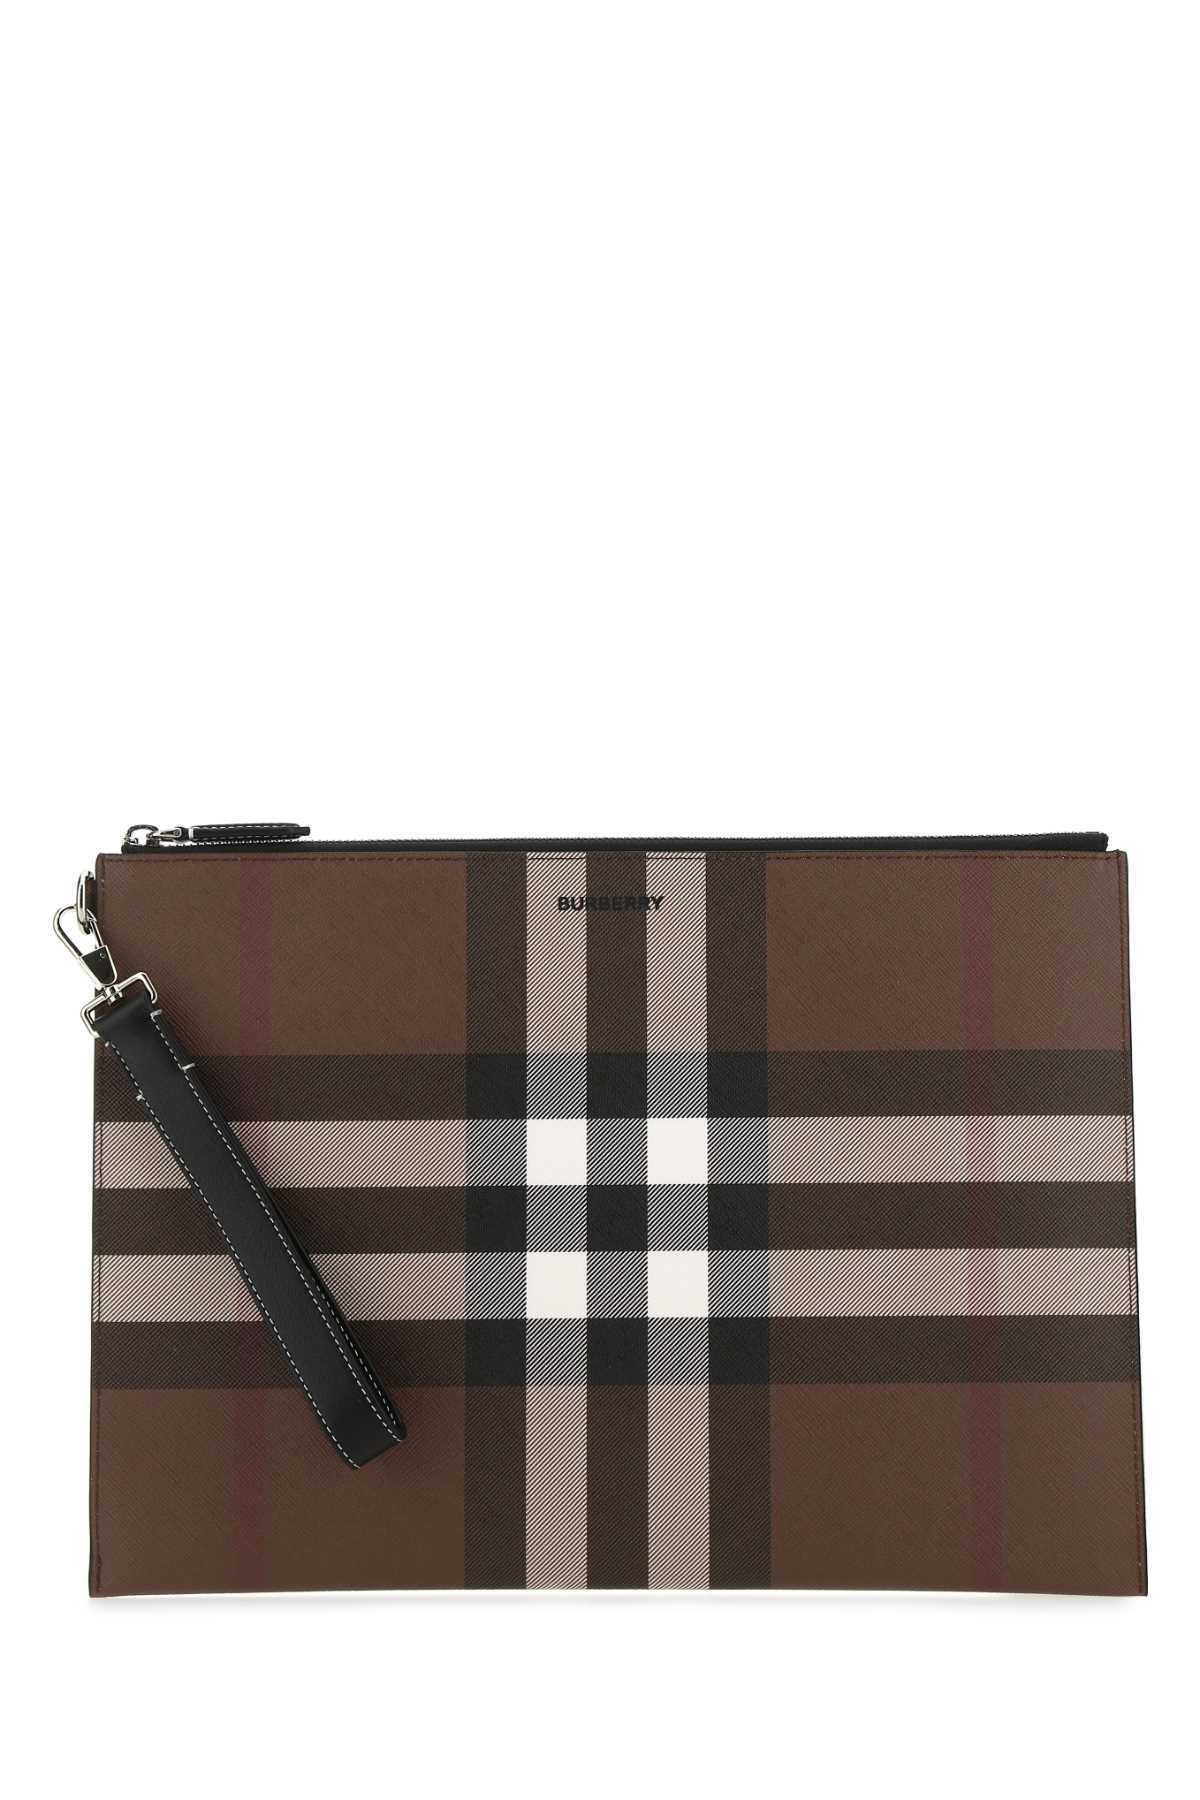 Burberry CLUTCH BAG (8036673 A8900) (Burberry/クラッチバッグ) 70670315